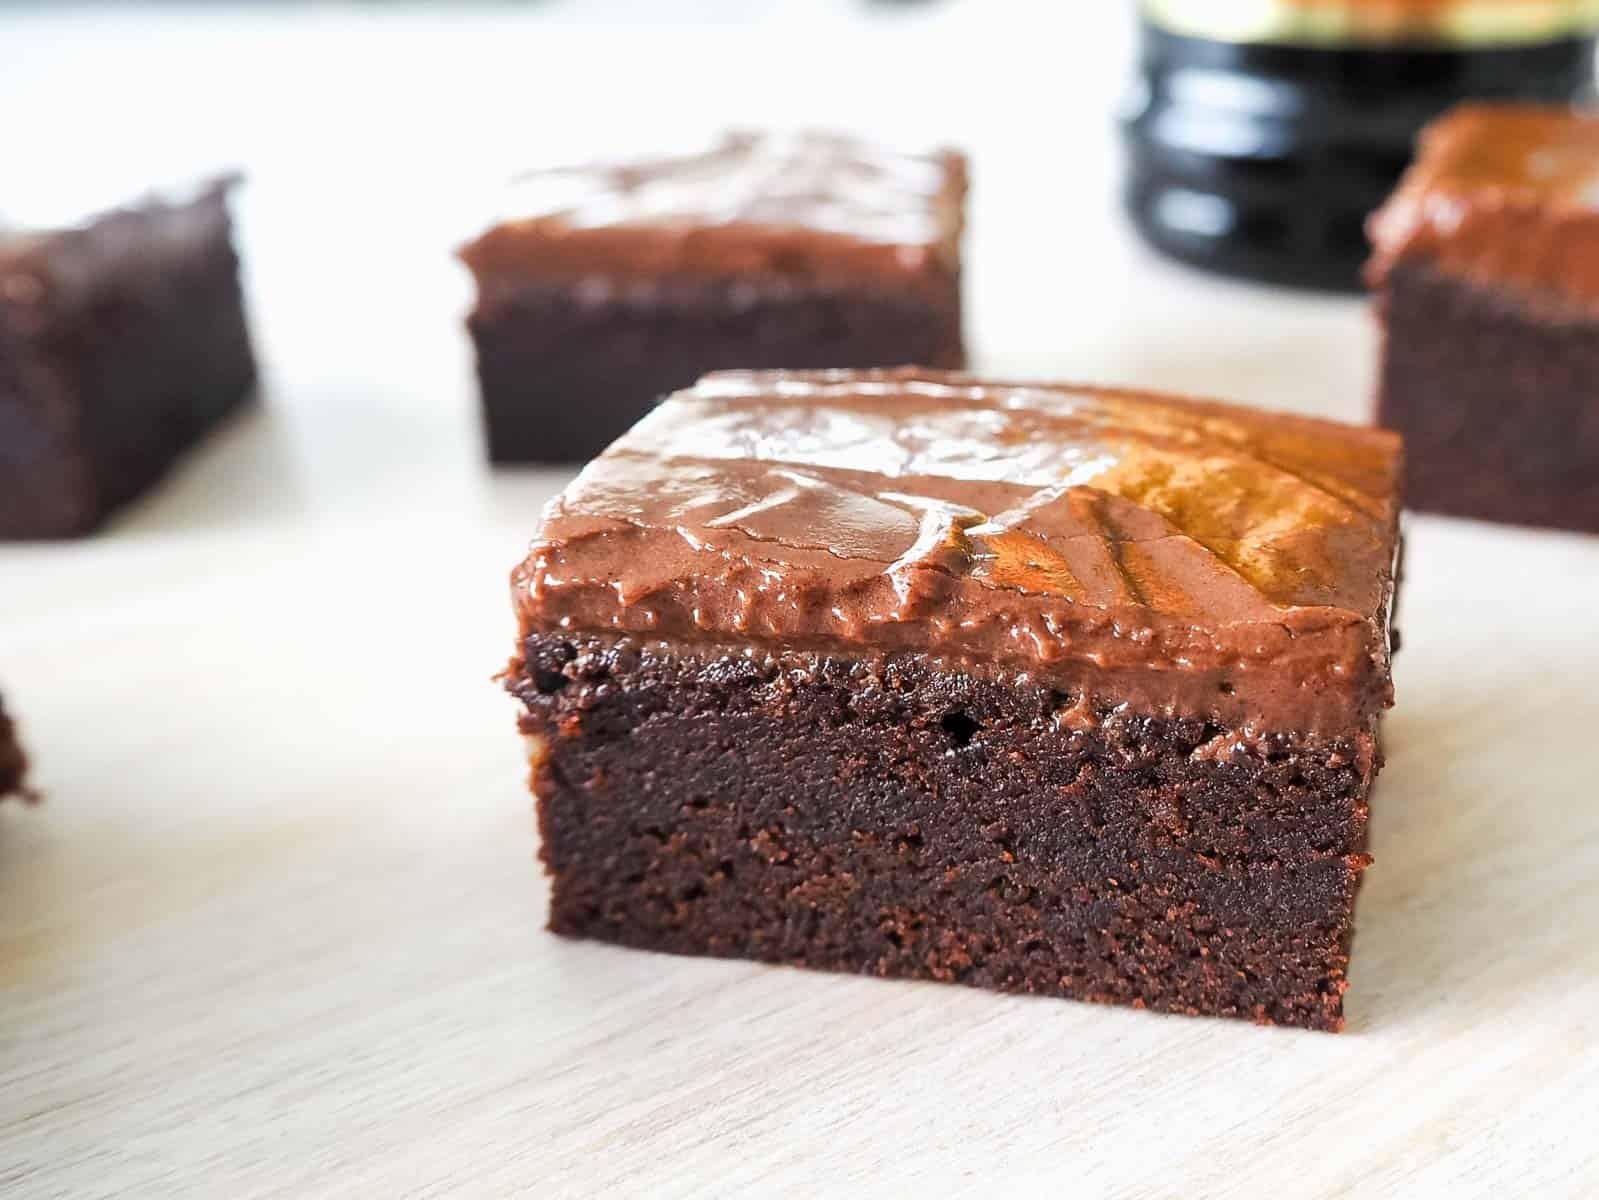 Pieces of chocolate brownie slice with a chocolate ganache